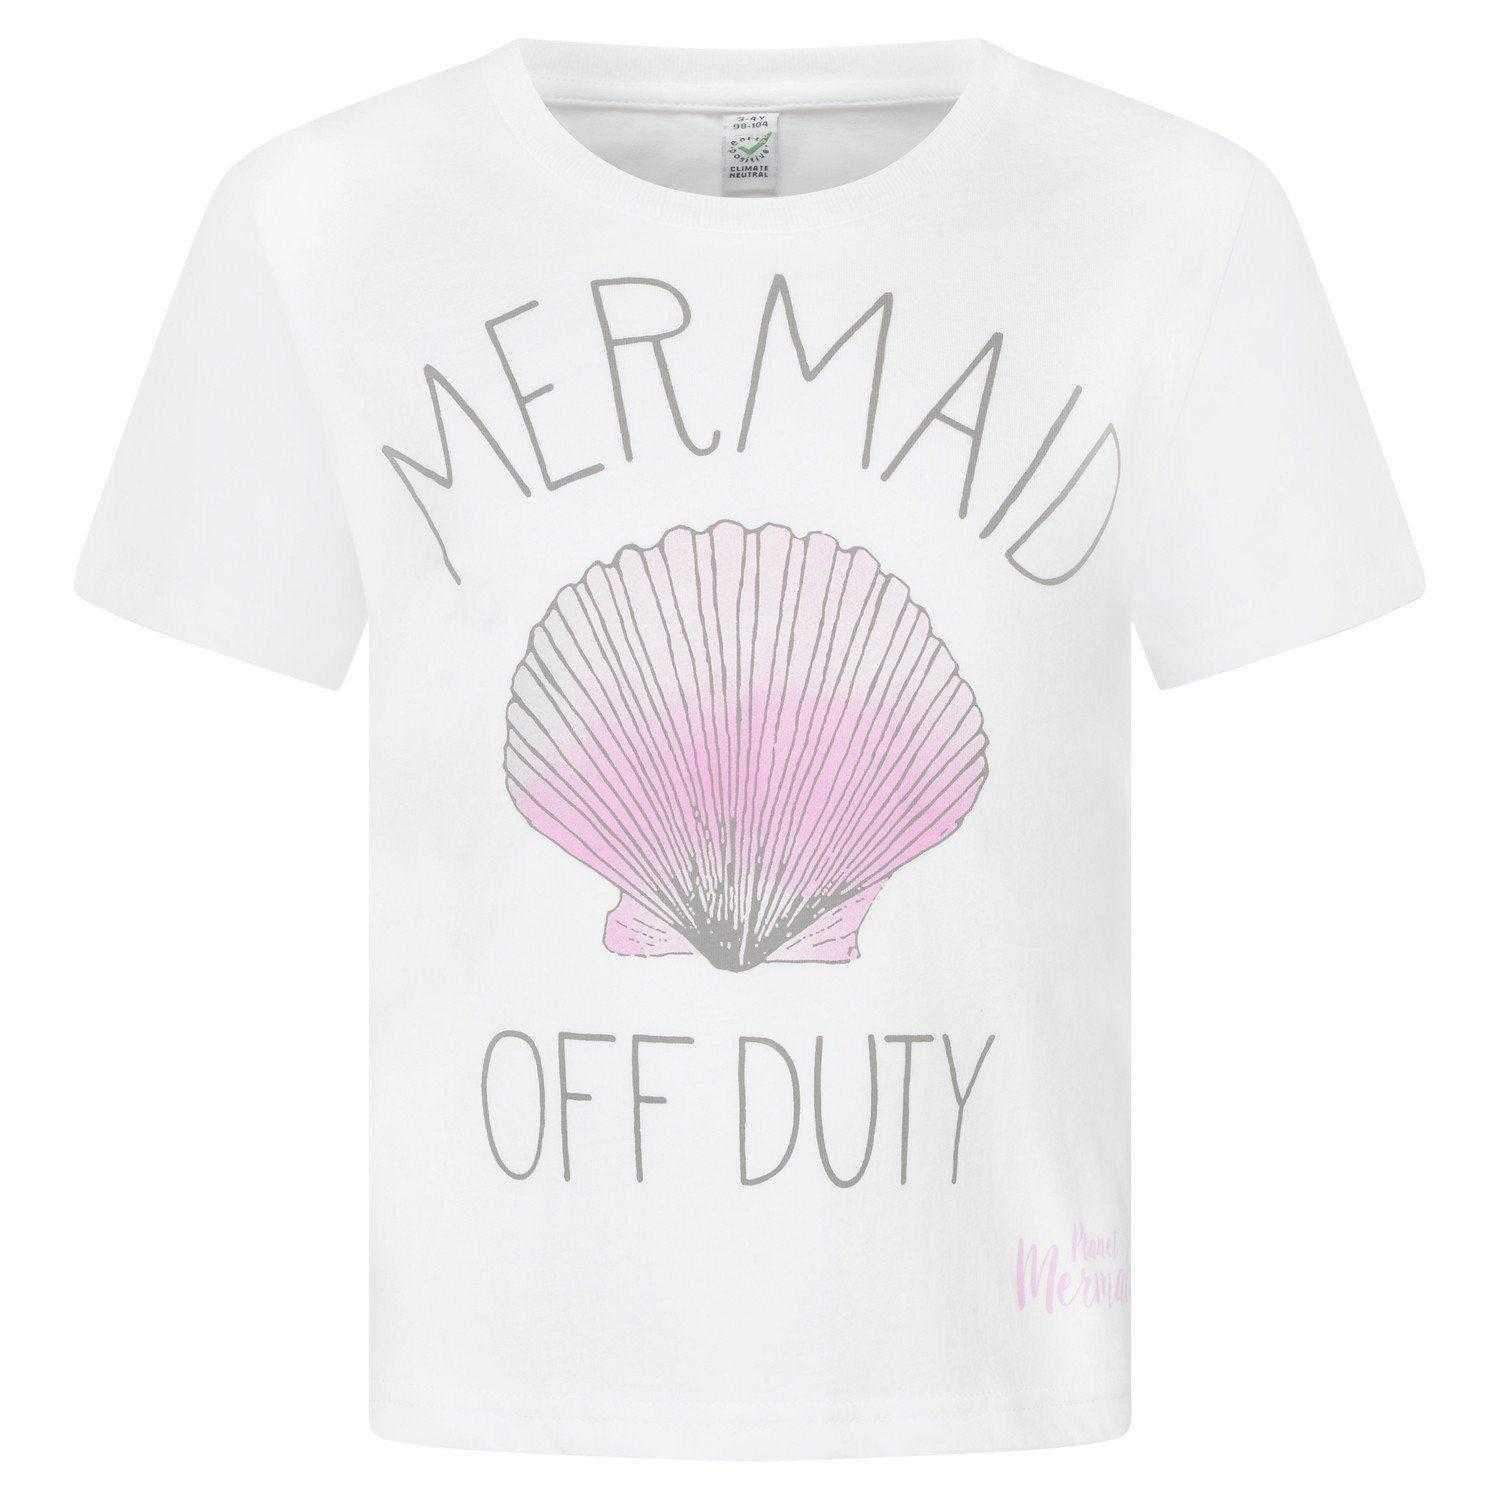 Mermaid Off Duty T-shirt - Mermaids Tail UK